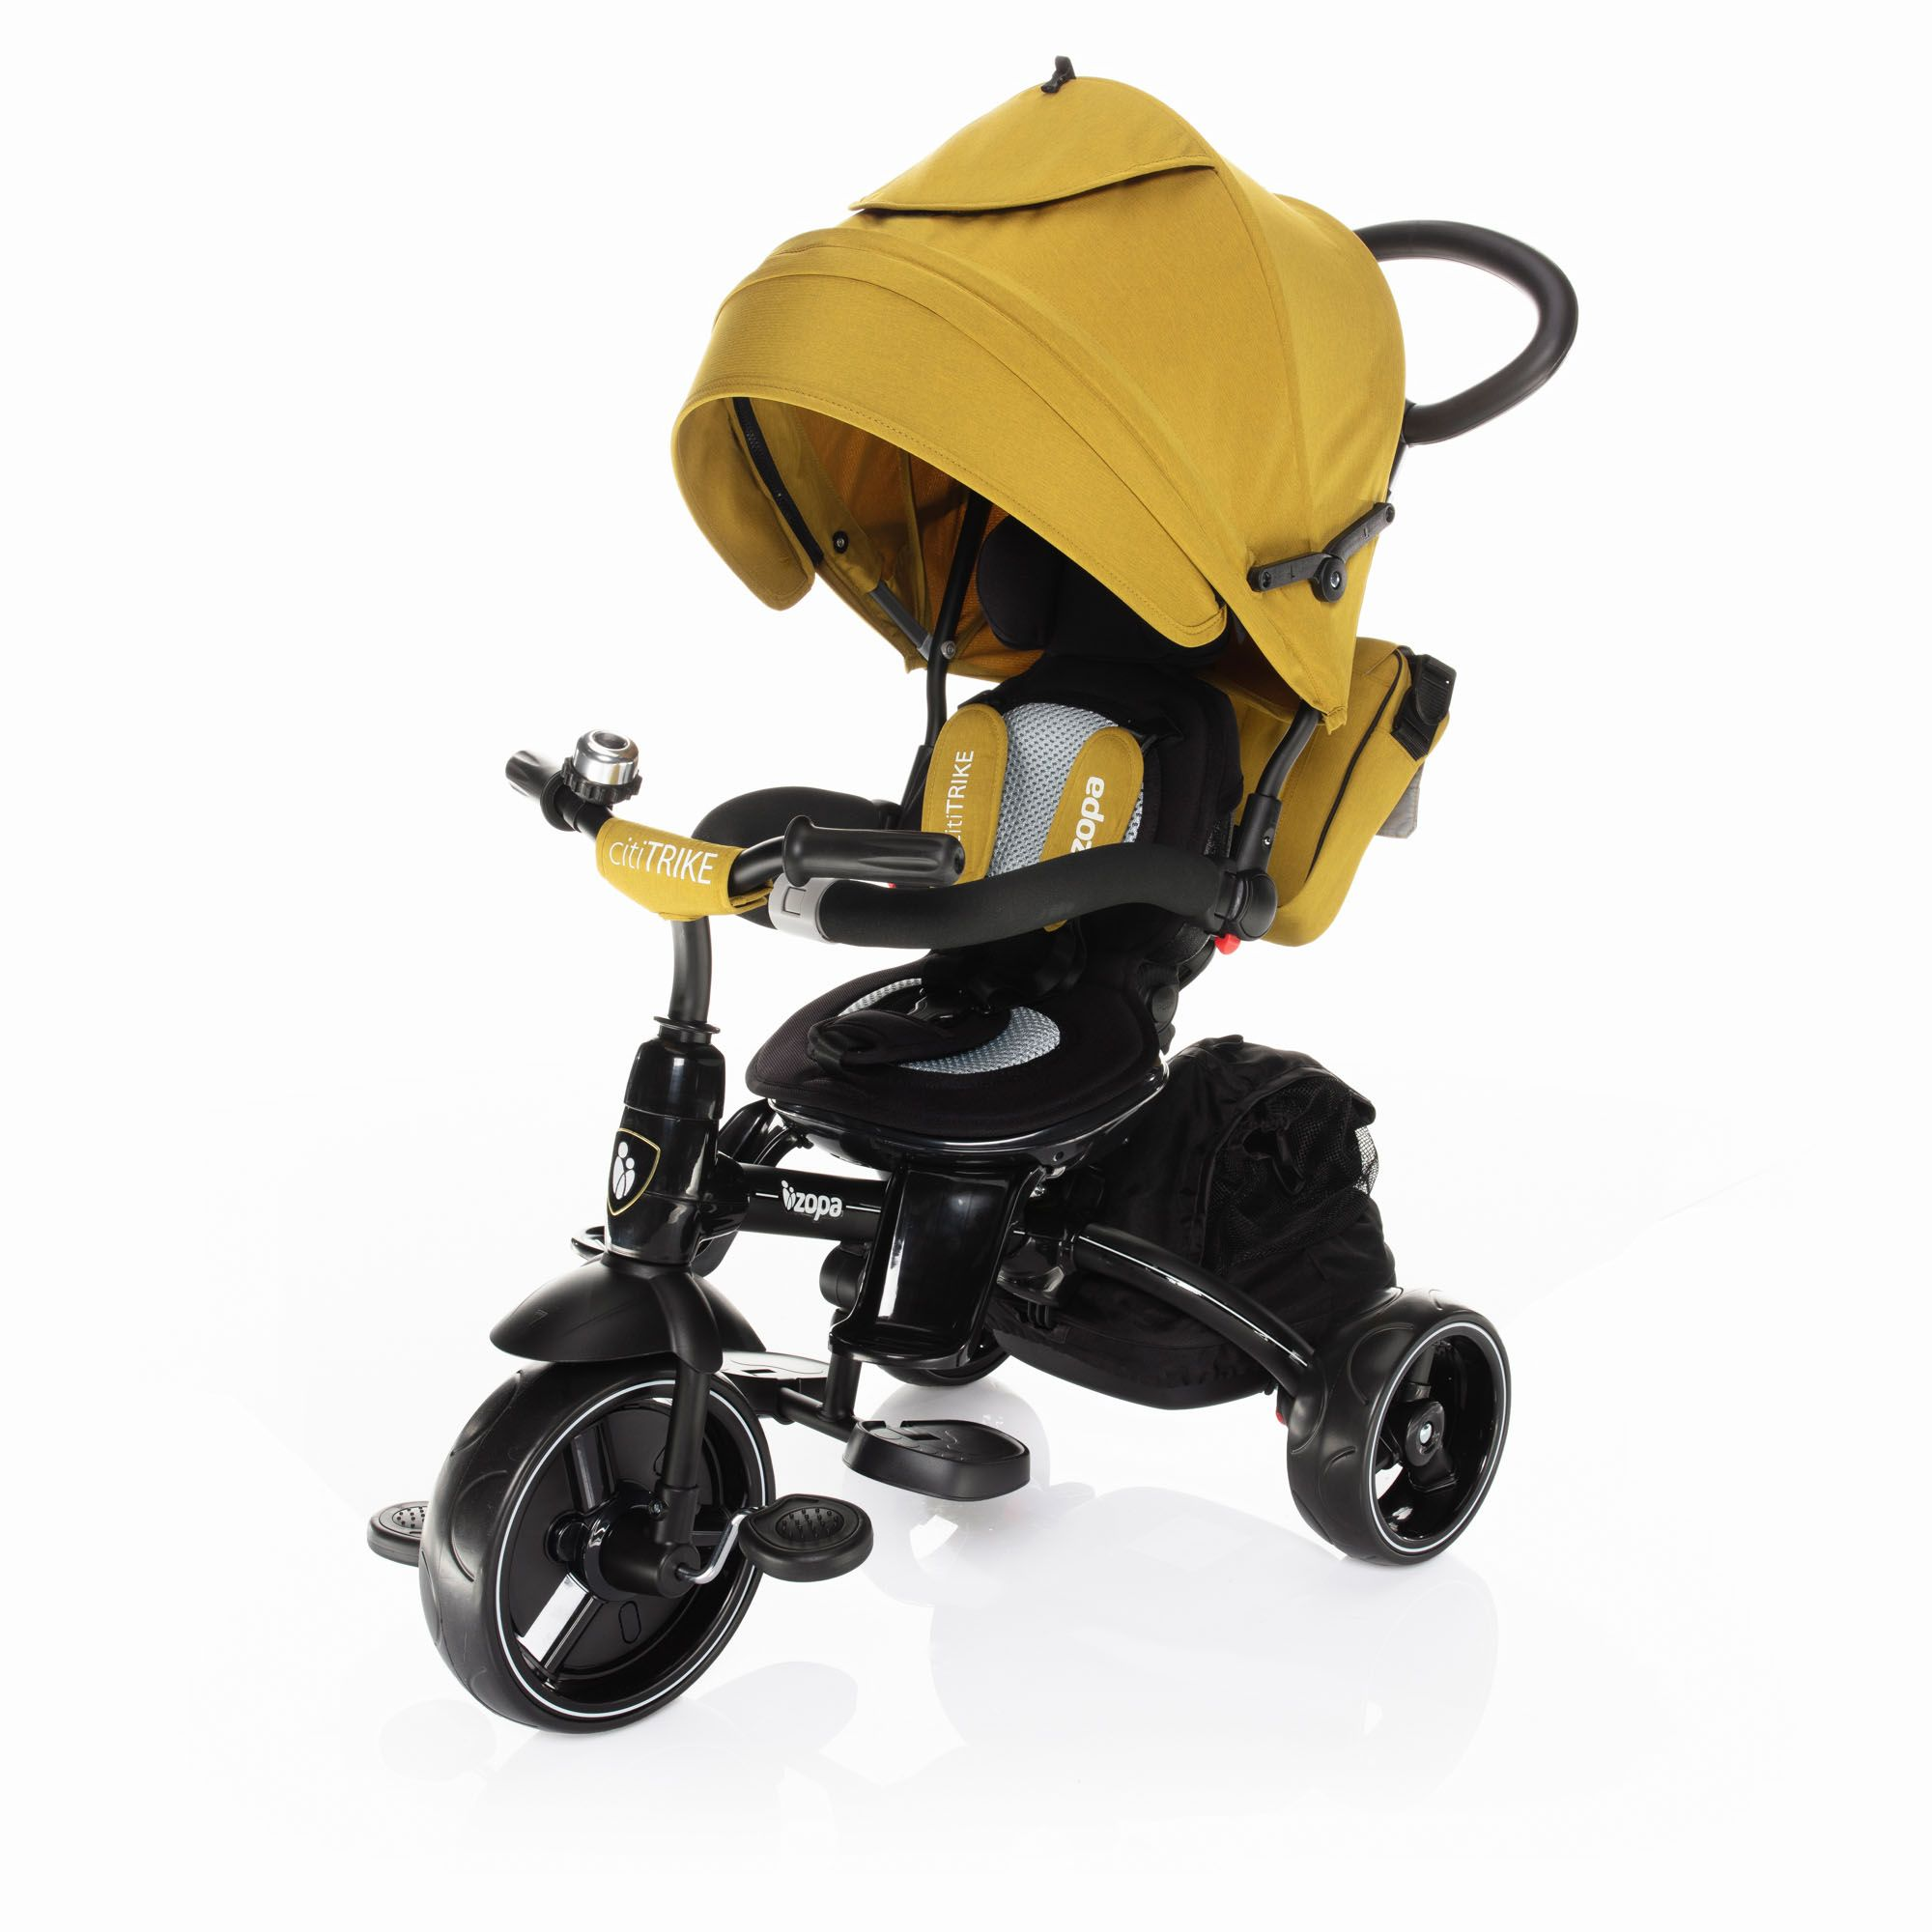 Trojkolka Zopa Citi Trike - Curry Yellow